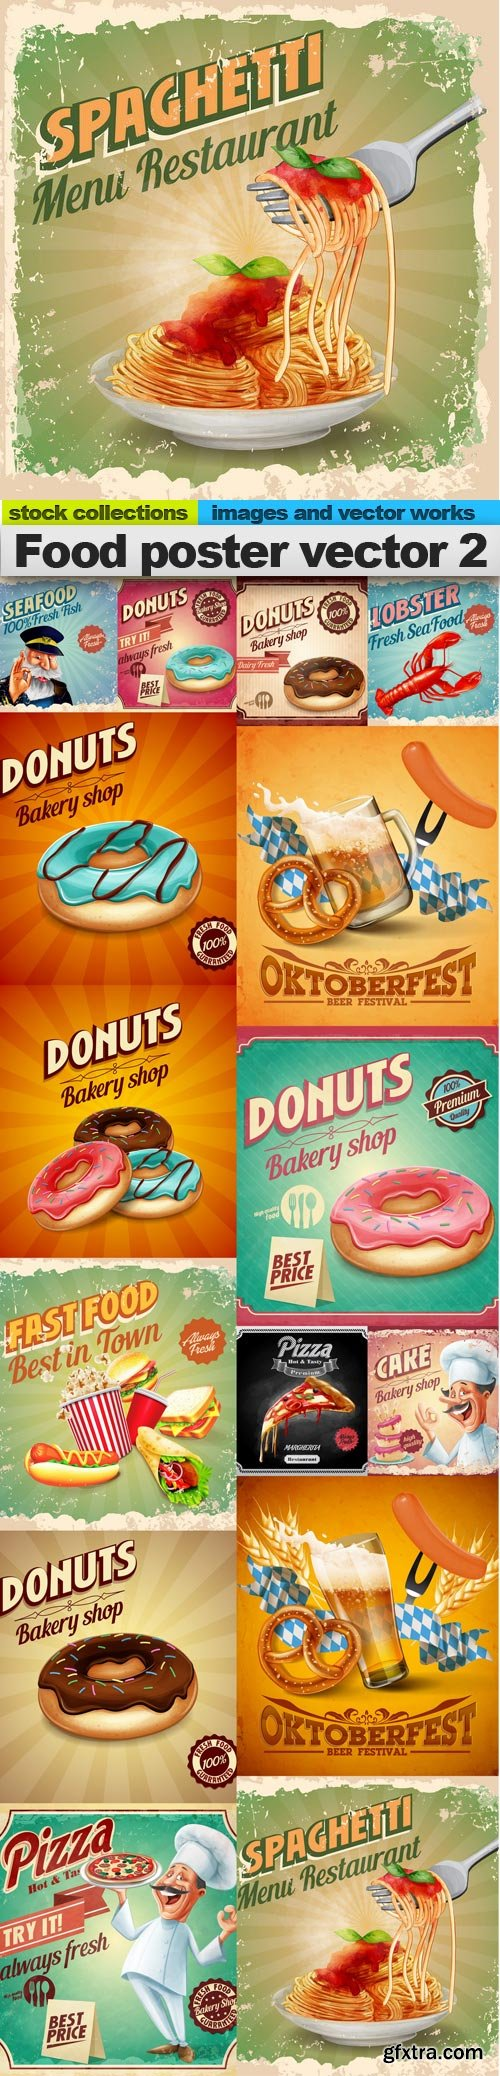 Food poster vector 2, 15 x EPS